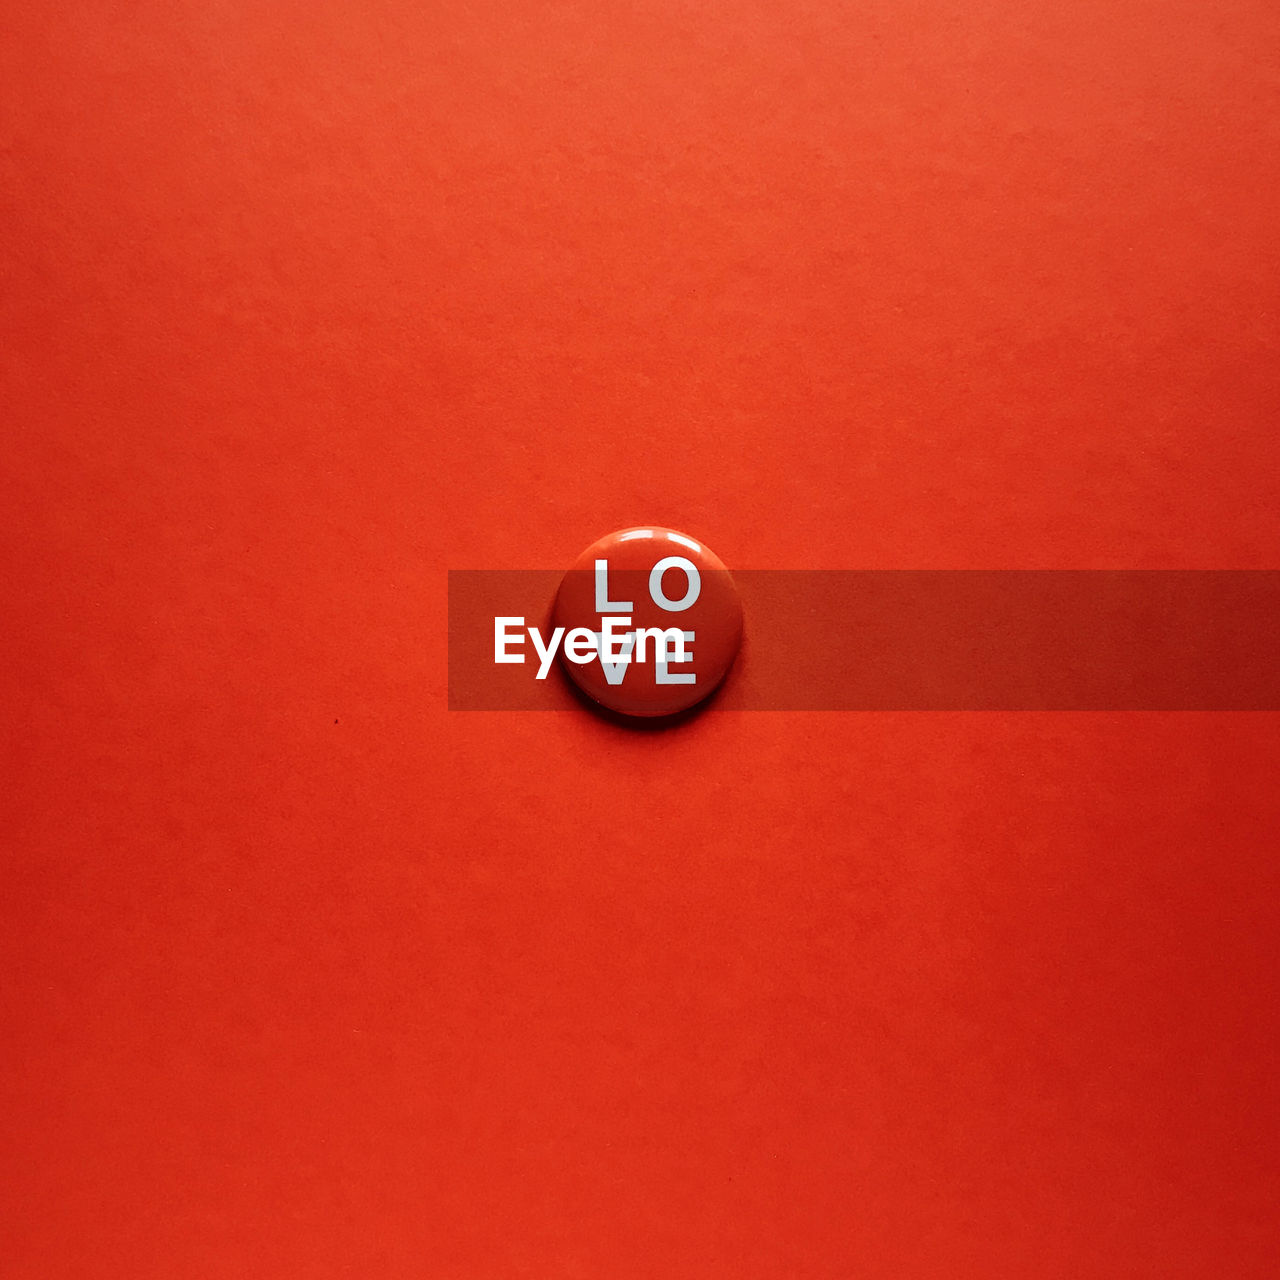 number, red, no people, indoors, communication, close-up, leisure games, copy space, arts culture and entertainment, relaxation, dice, gambling, orange color, wall - building feature, high angle view, text, shape, table